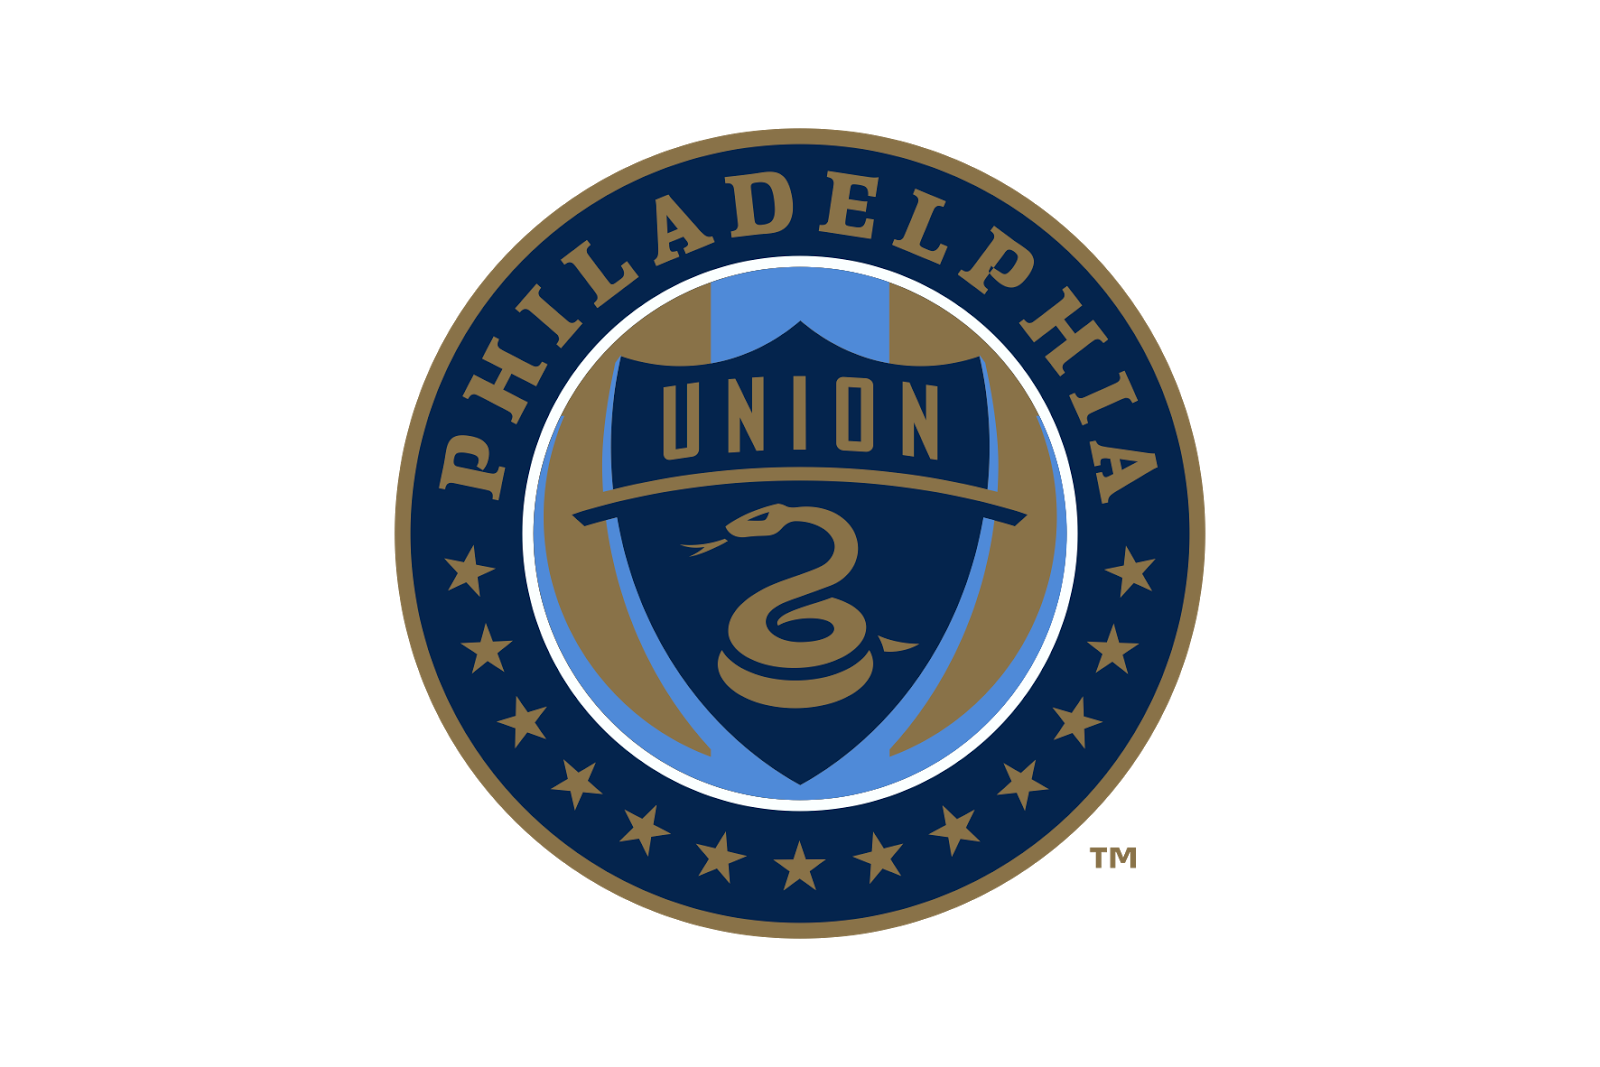 philedelphia union